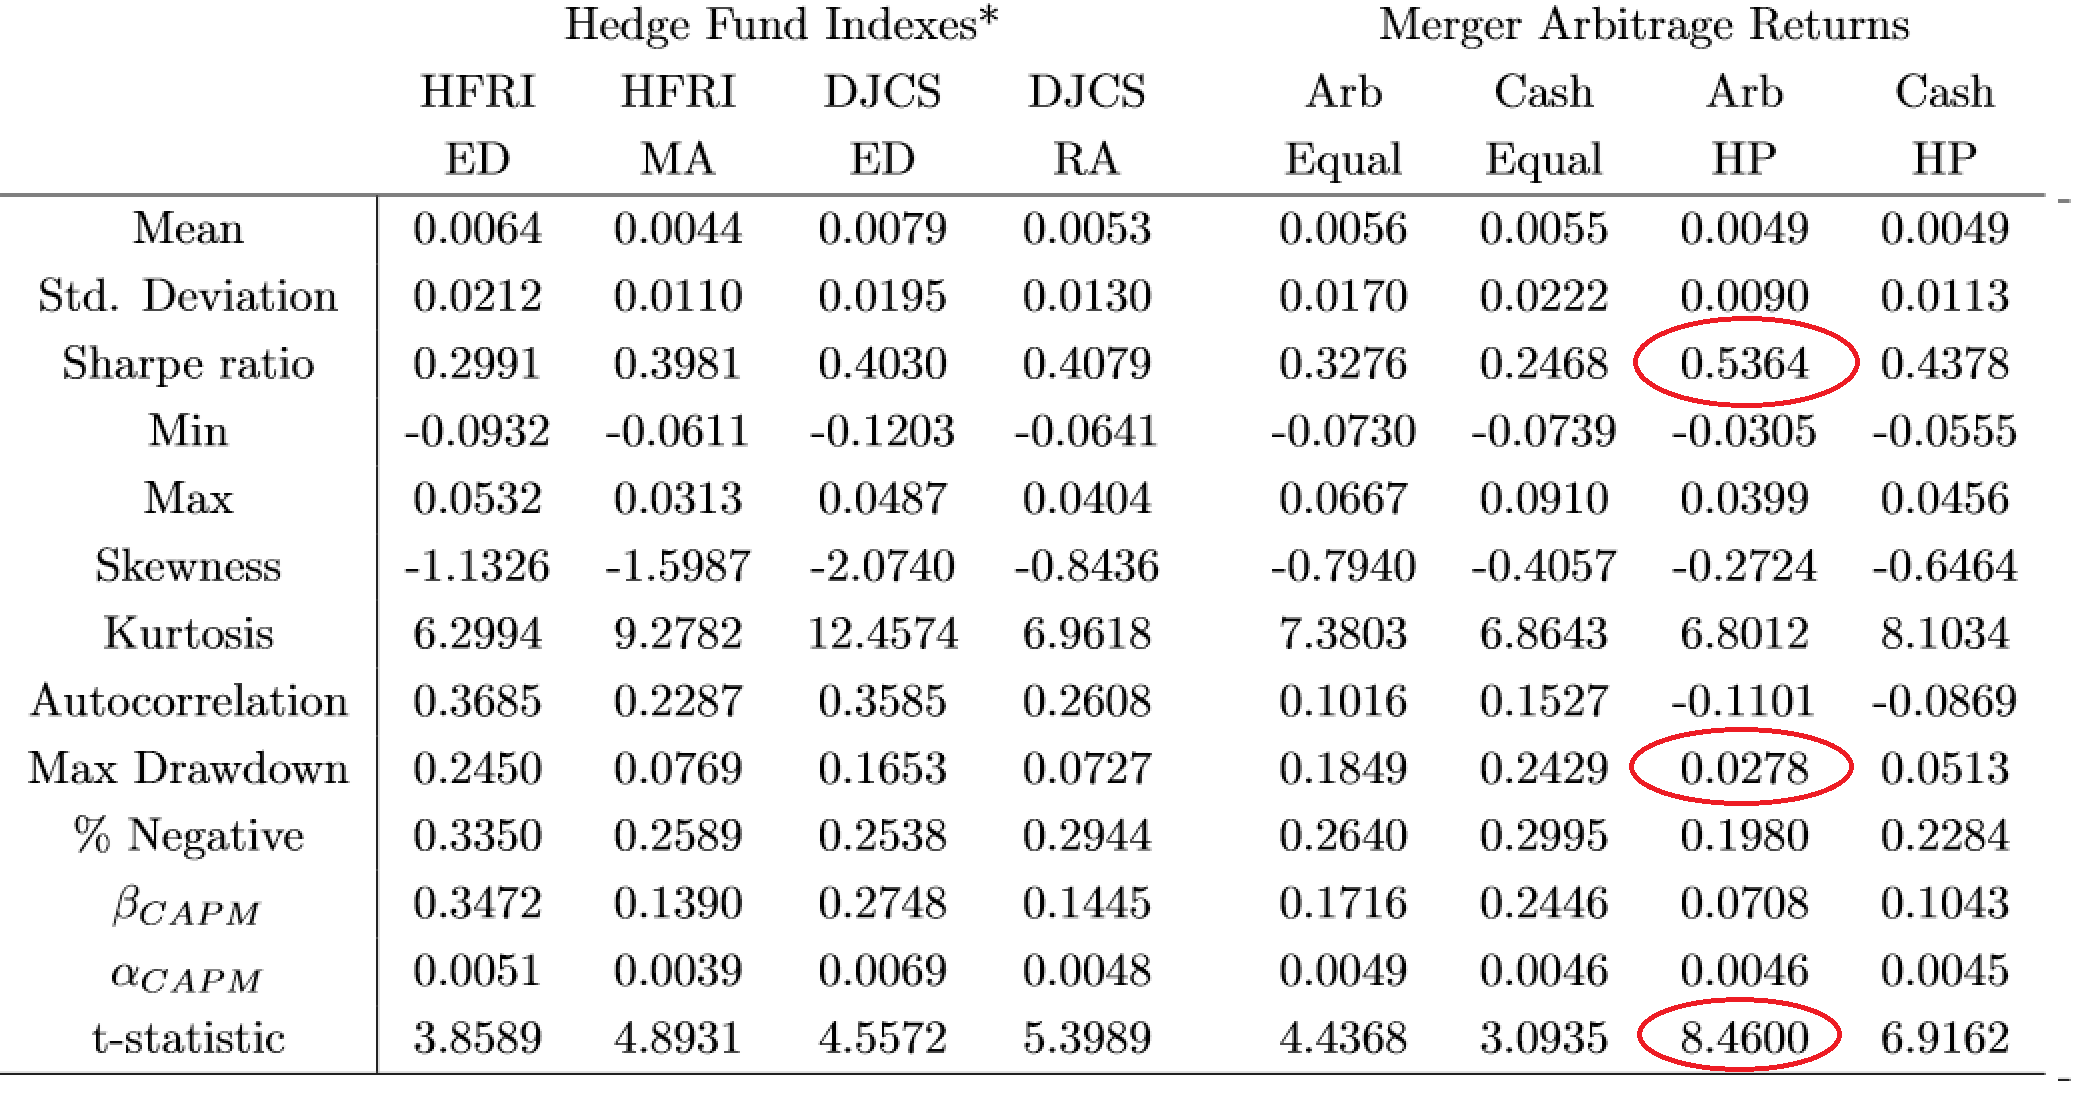 A Quantitative Strategy for Enhancing Merger Arbitrage -